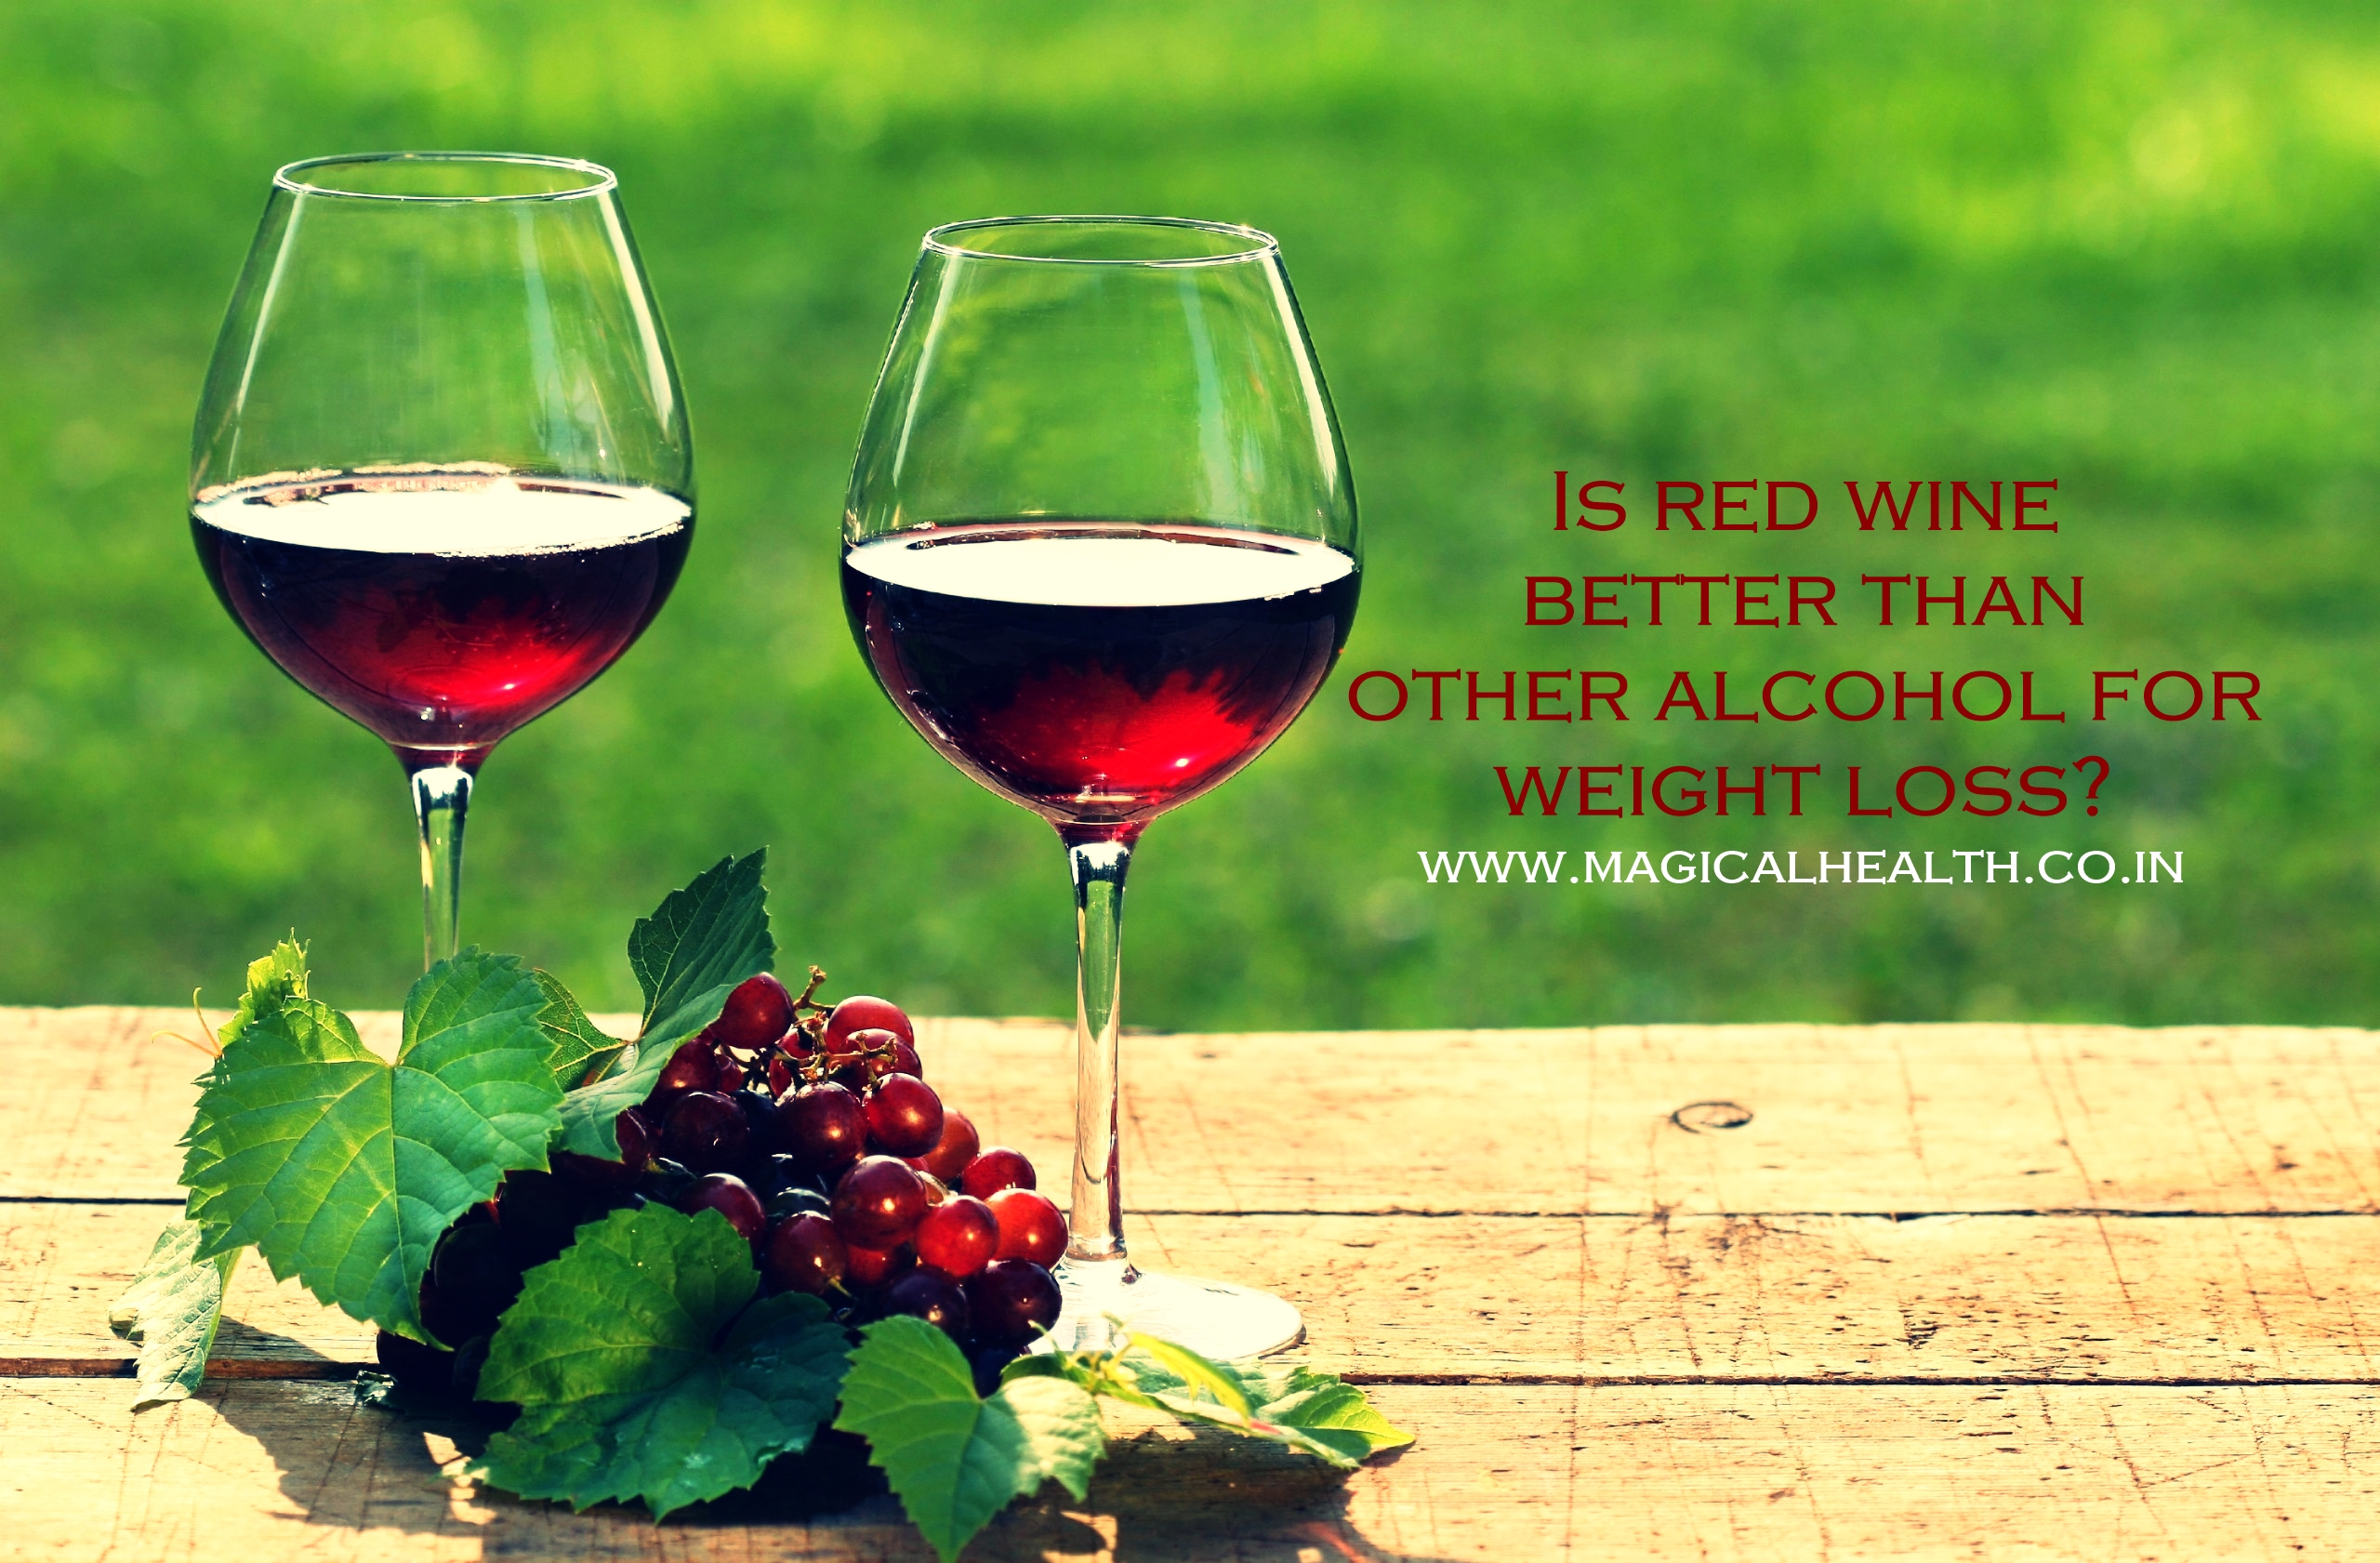 Is red wine better than other alcohol for weight loss?